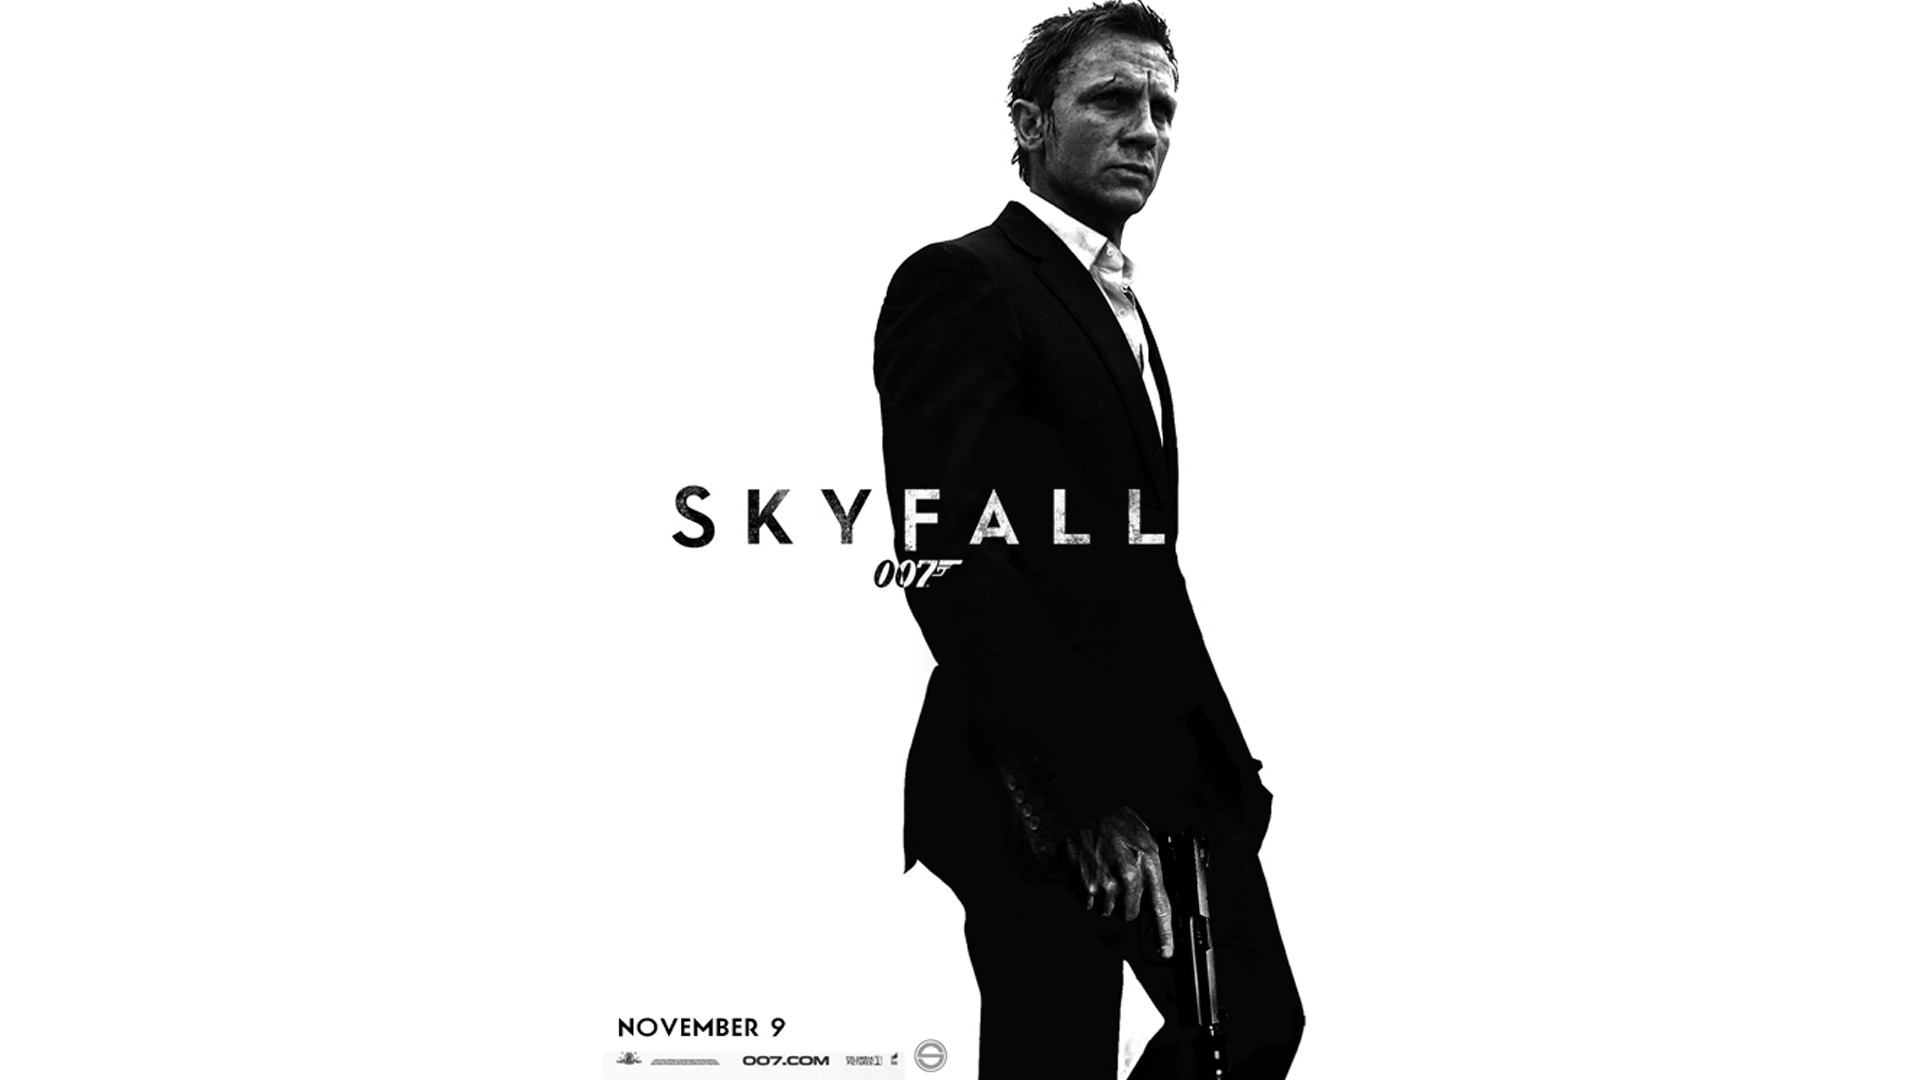 james bond 007 skyfall wallpaper 10 | wallpapersbq